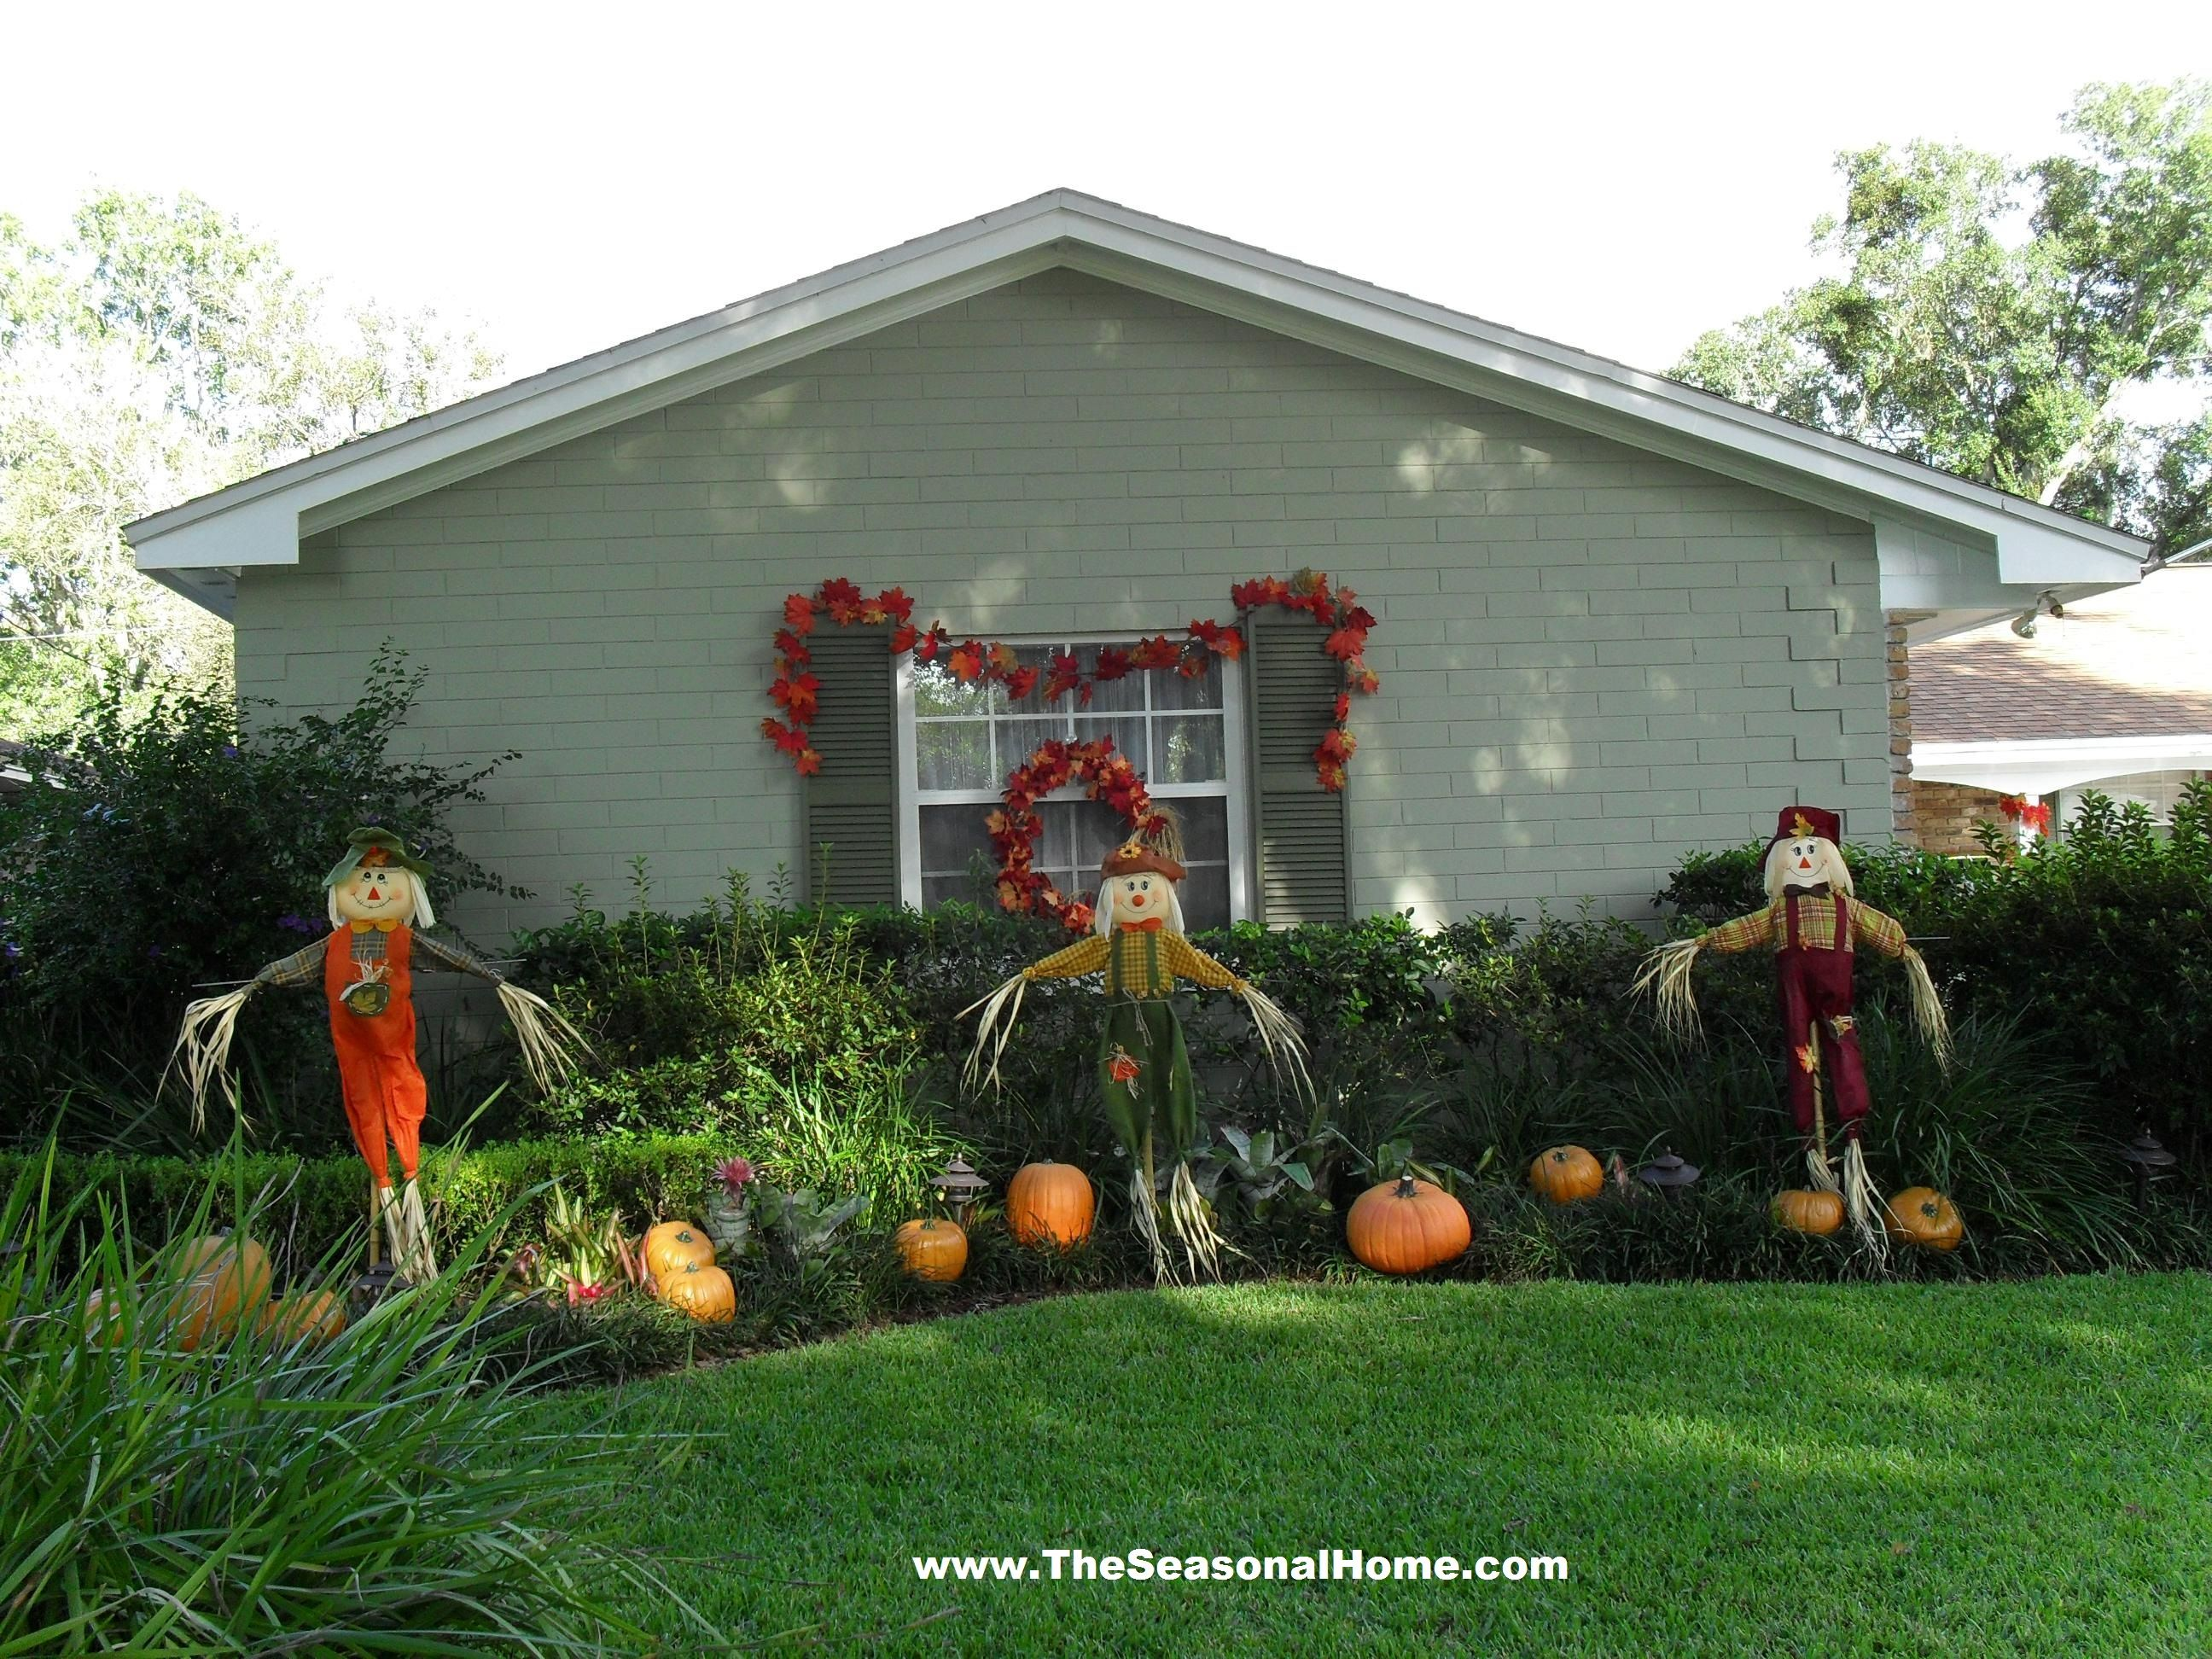 Halloween front garden ideas - Fall Yard Decoration Ideas The Seasonal Home